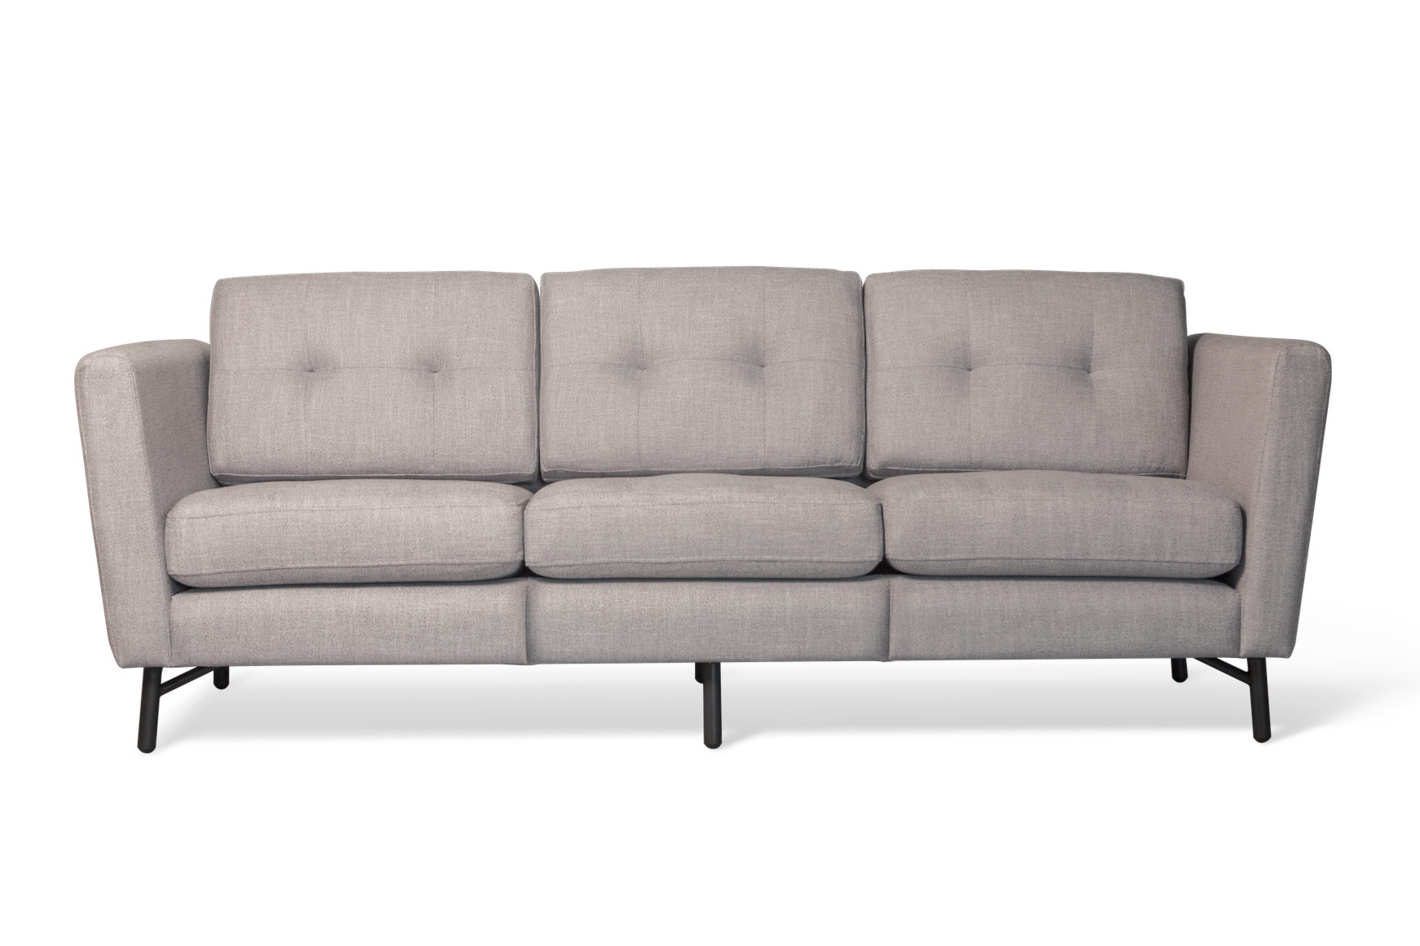 comfortable loveseat burrow sofa WEWRRPI